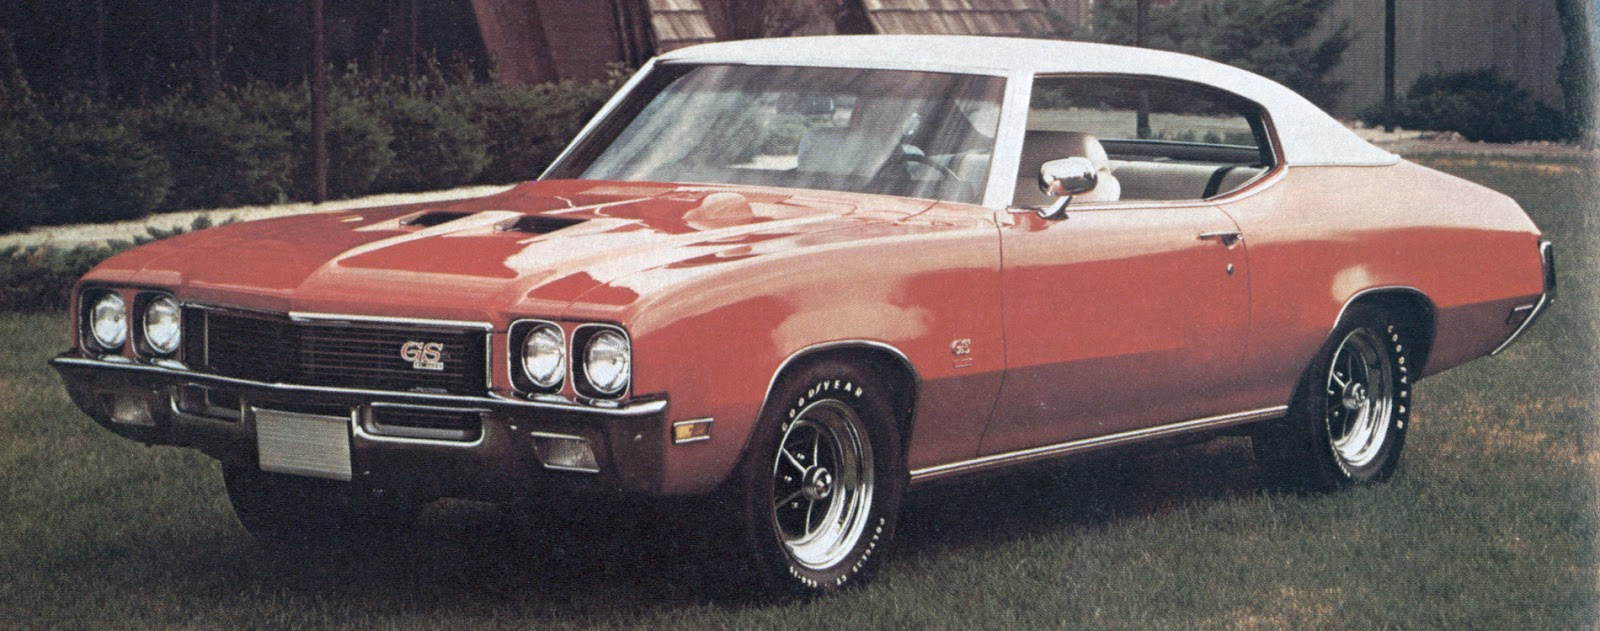 1972 Buick Skylark GS and Stage 1 cars